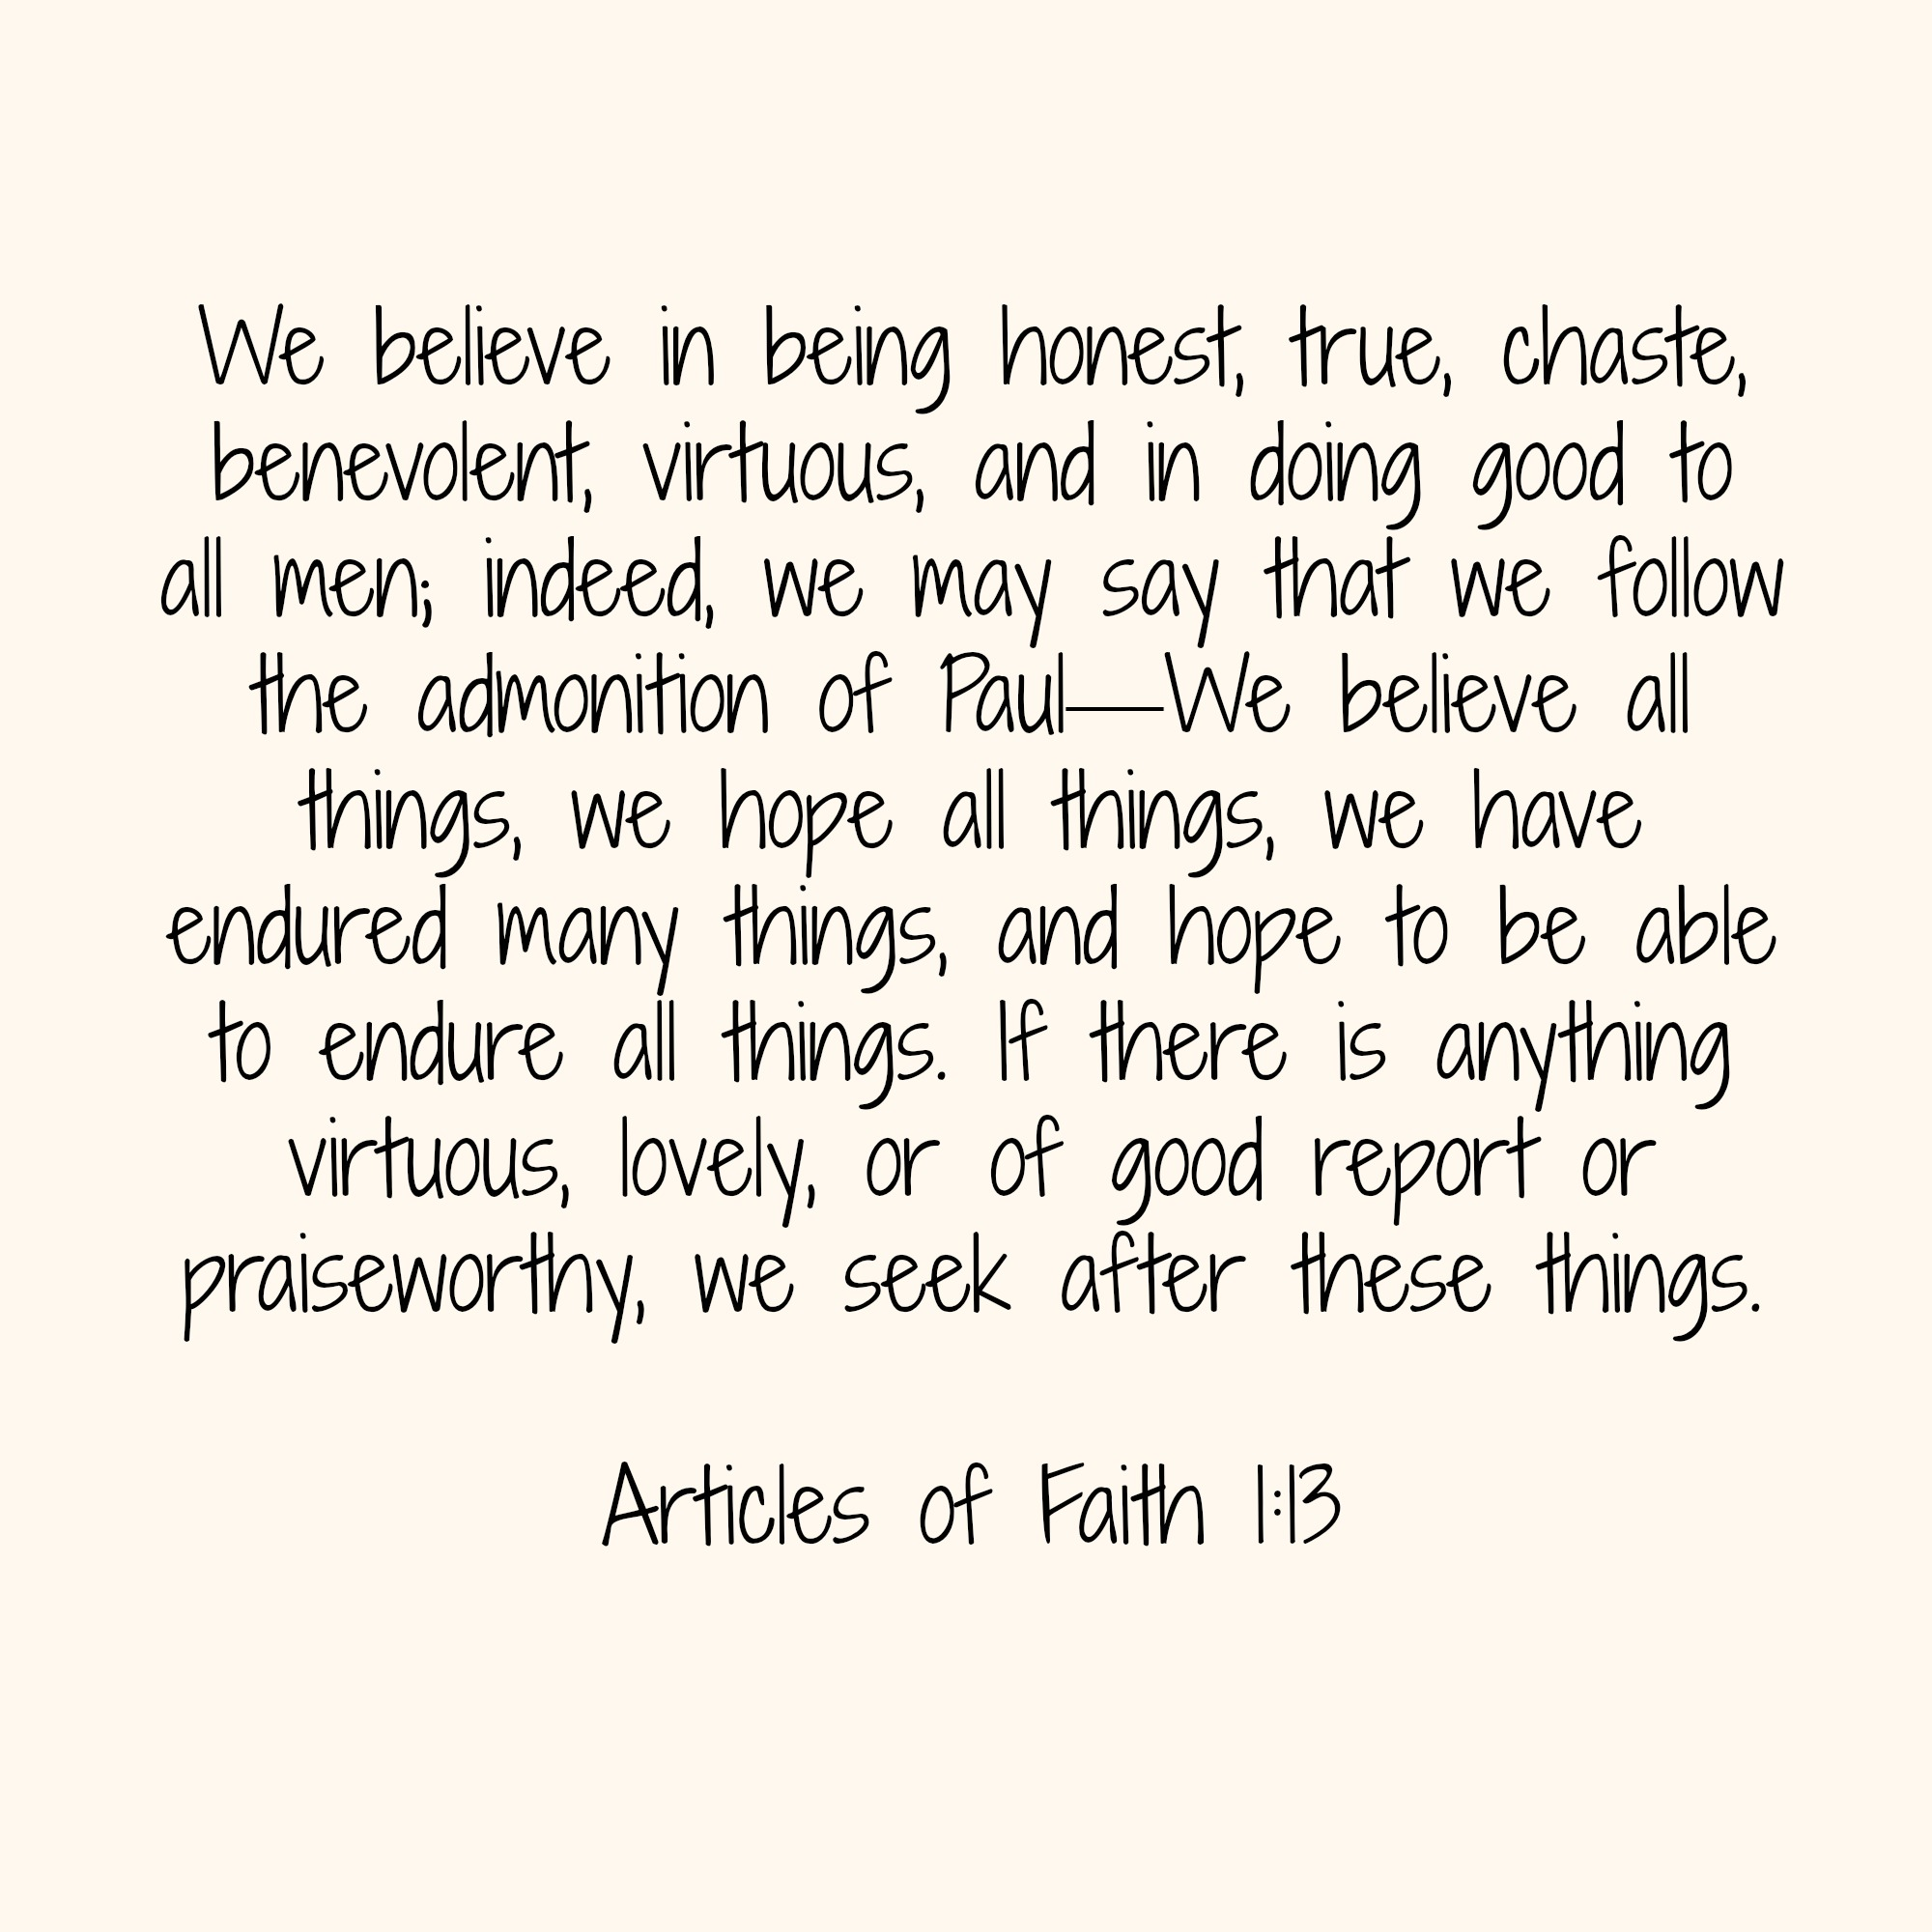 articles of faith 1-13